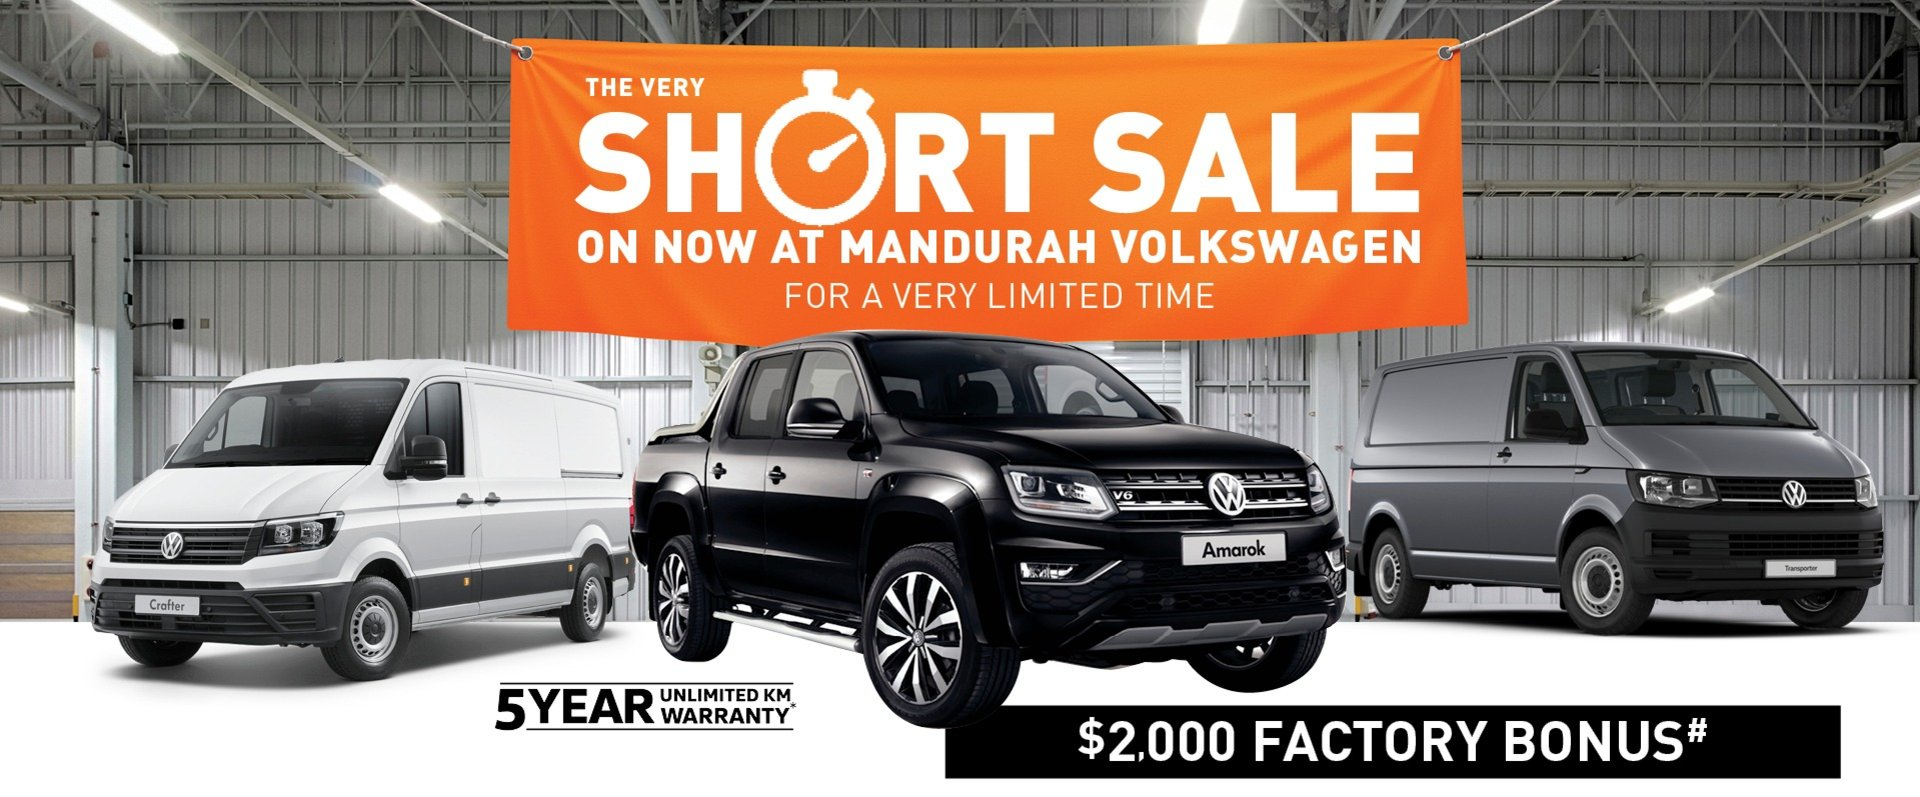 SHORT SALE ON NOW